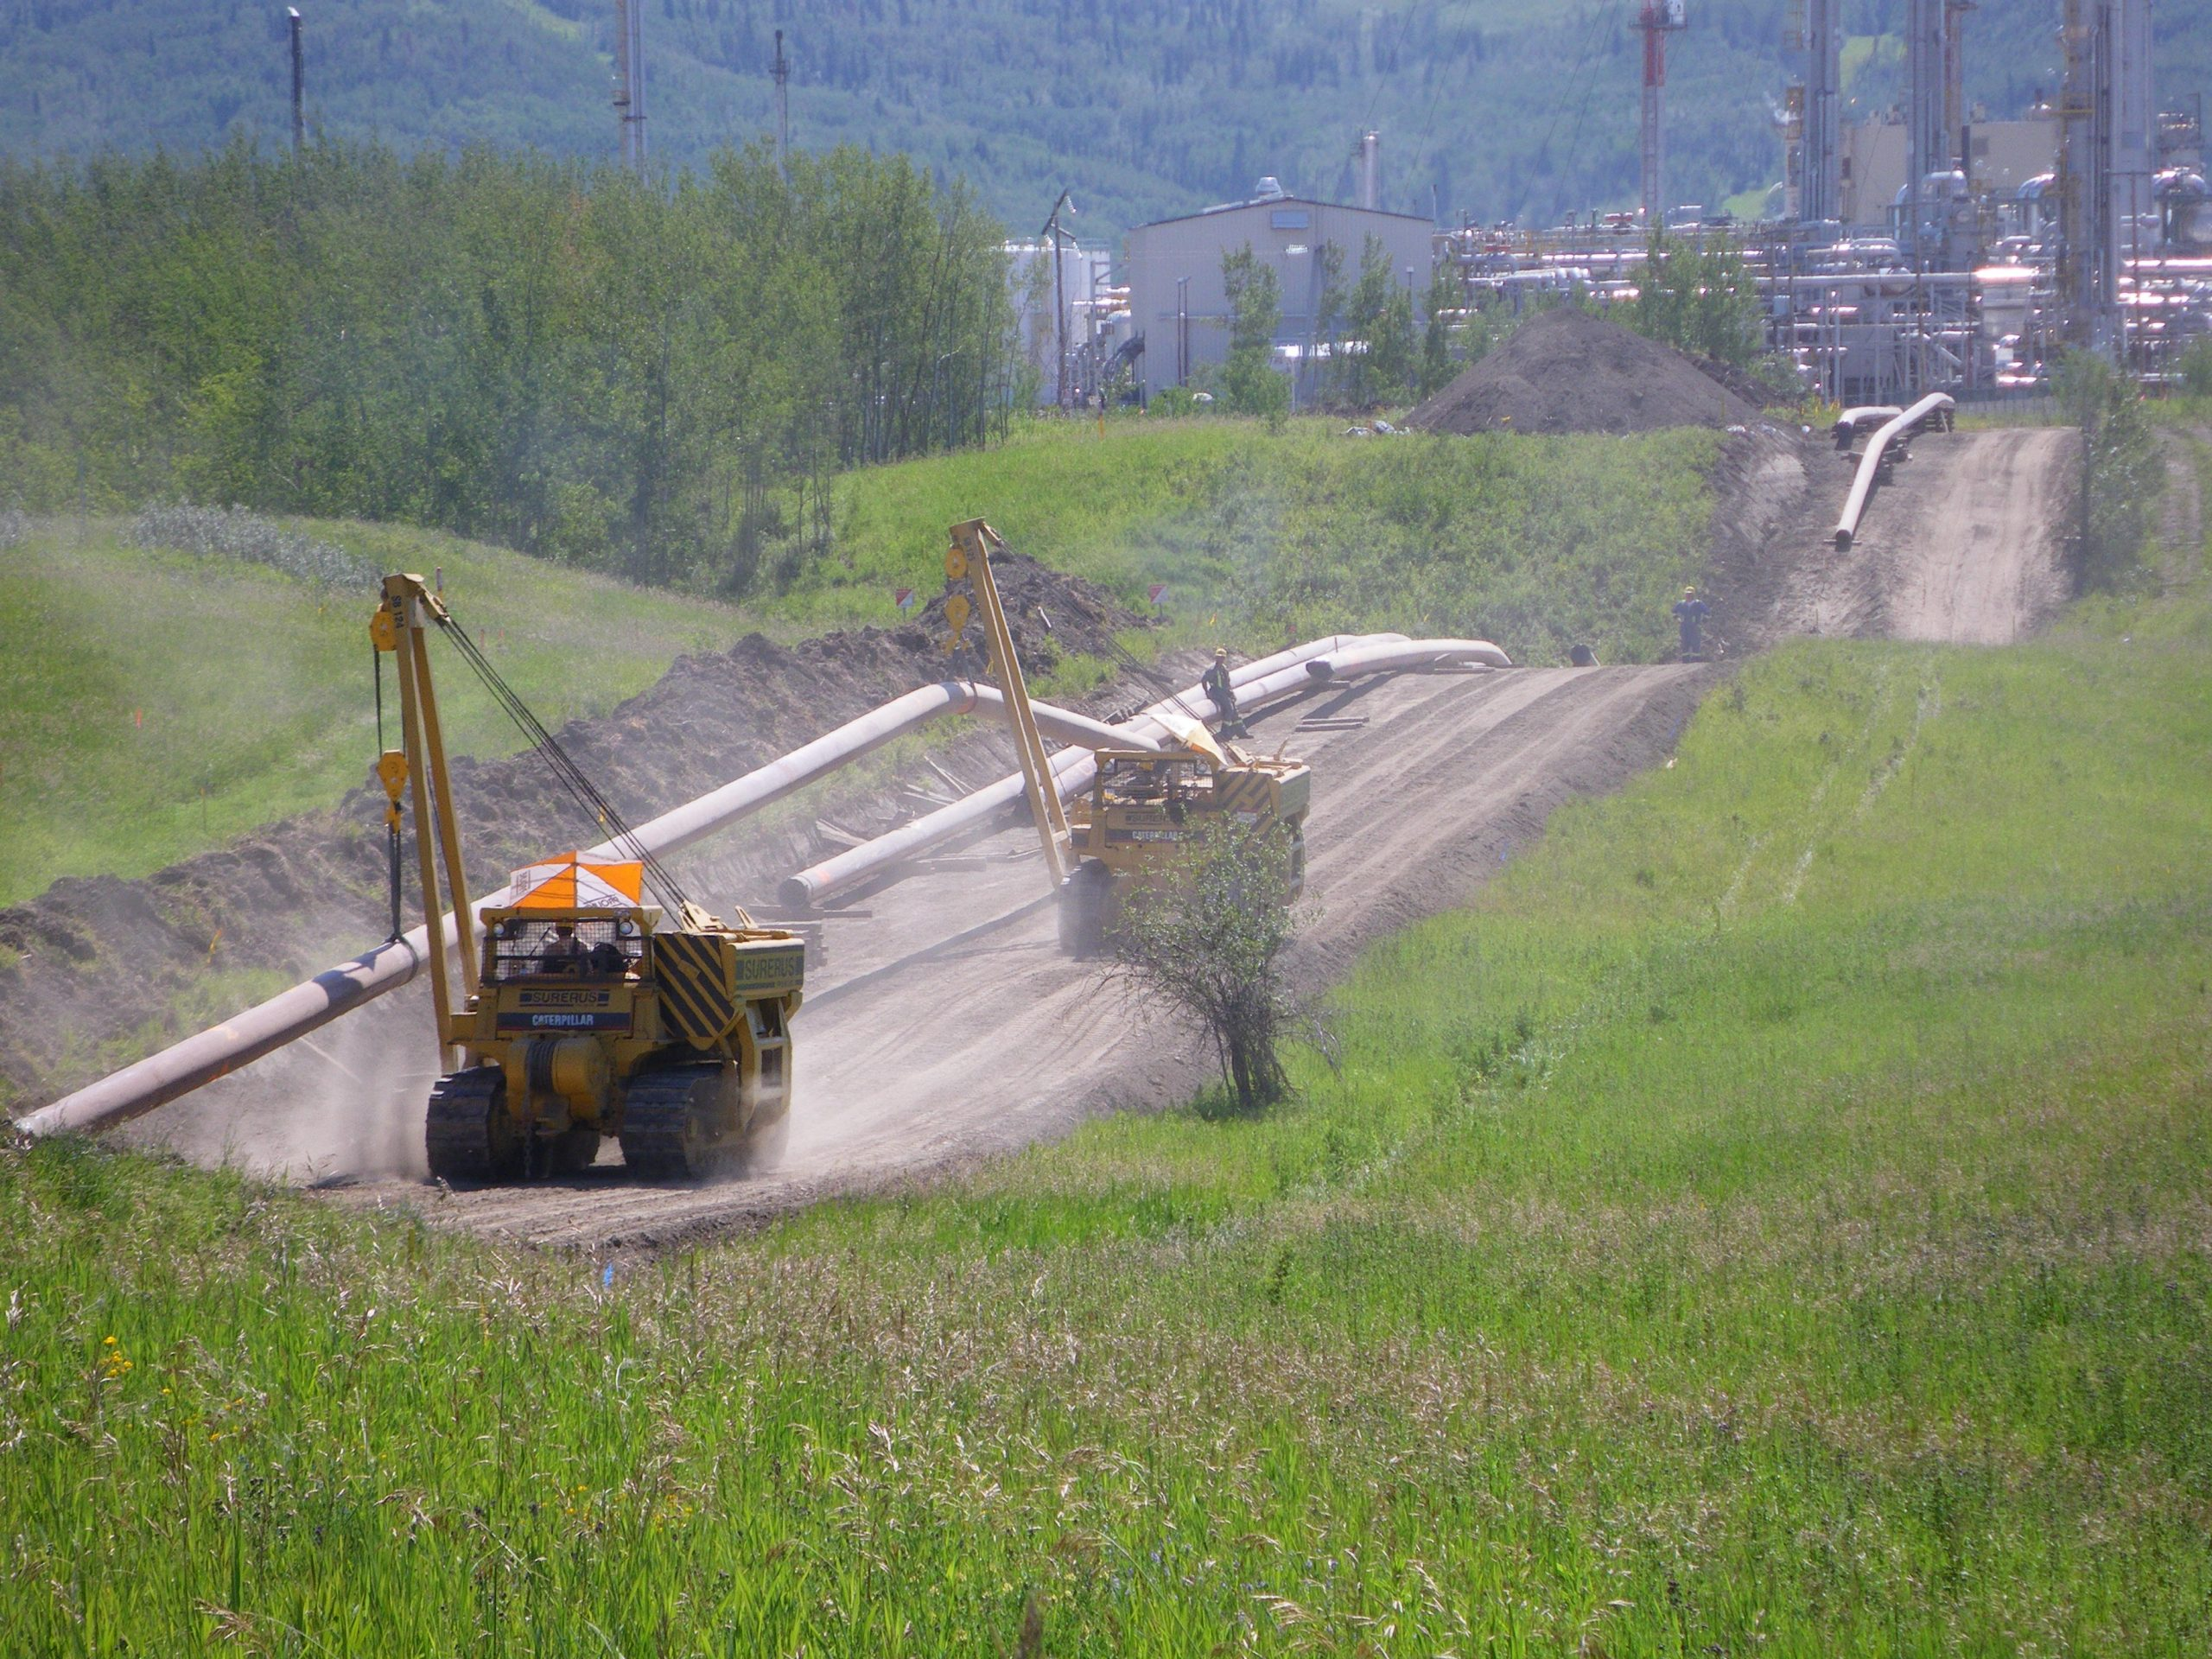 National Energy Board Reports Maintenance Cause For Pipeline Incidents